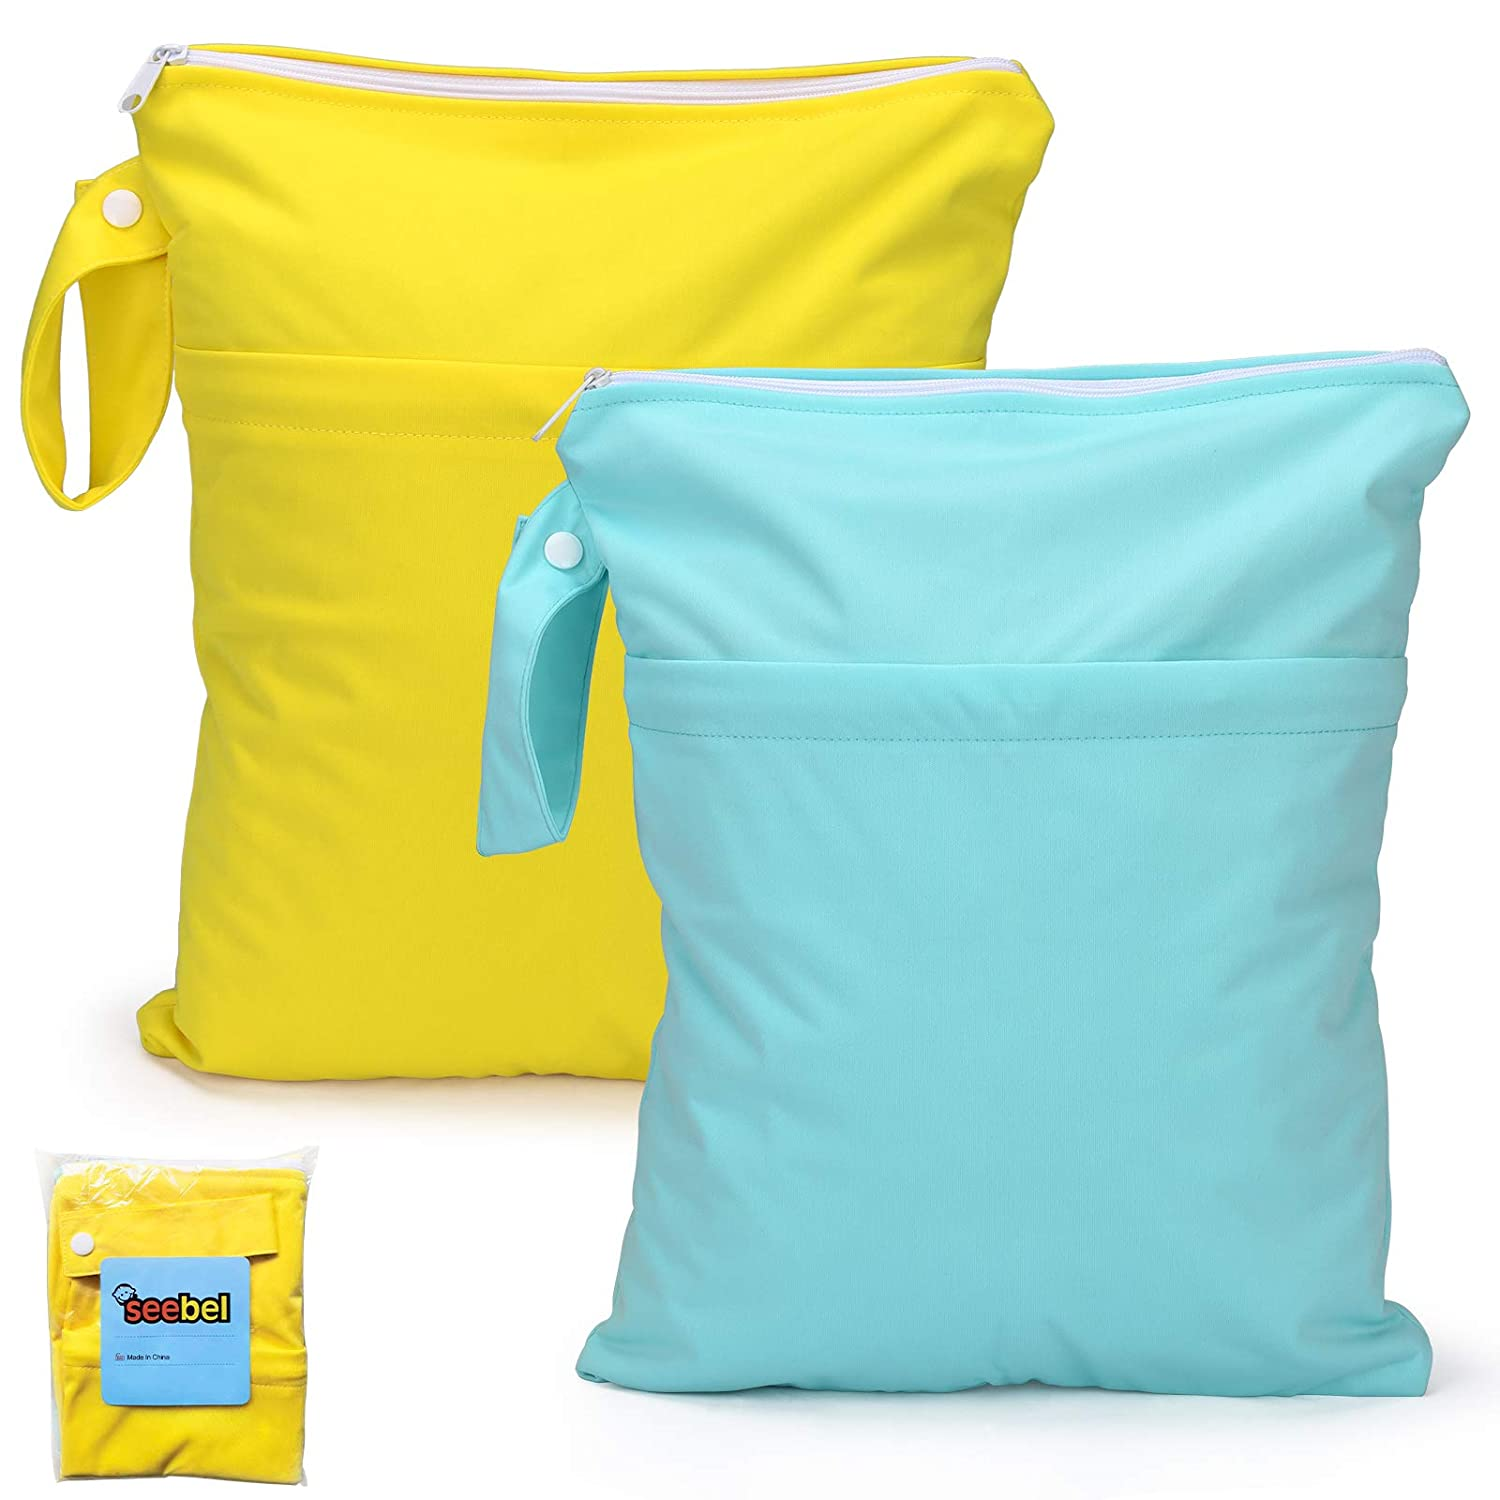 Seebel 2pcs Cloth Diaper Wet Popular product Direct sale of manufacturer Dry with Bags Reusable T Waterproof